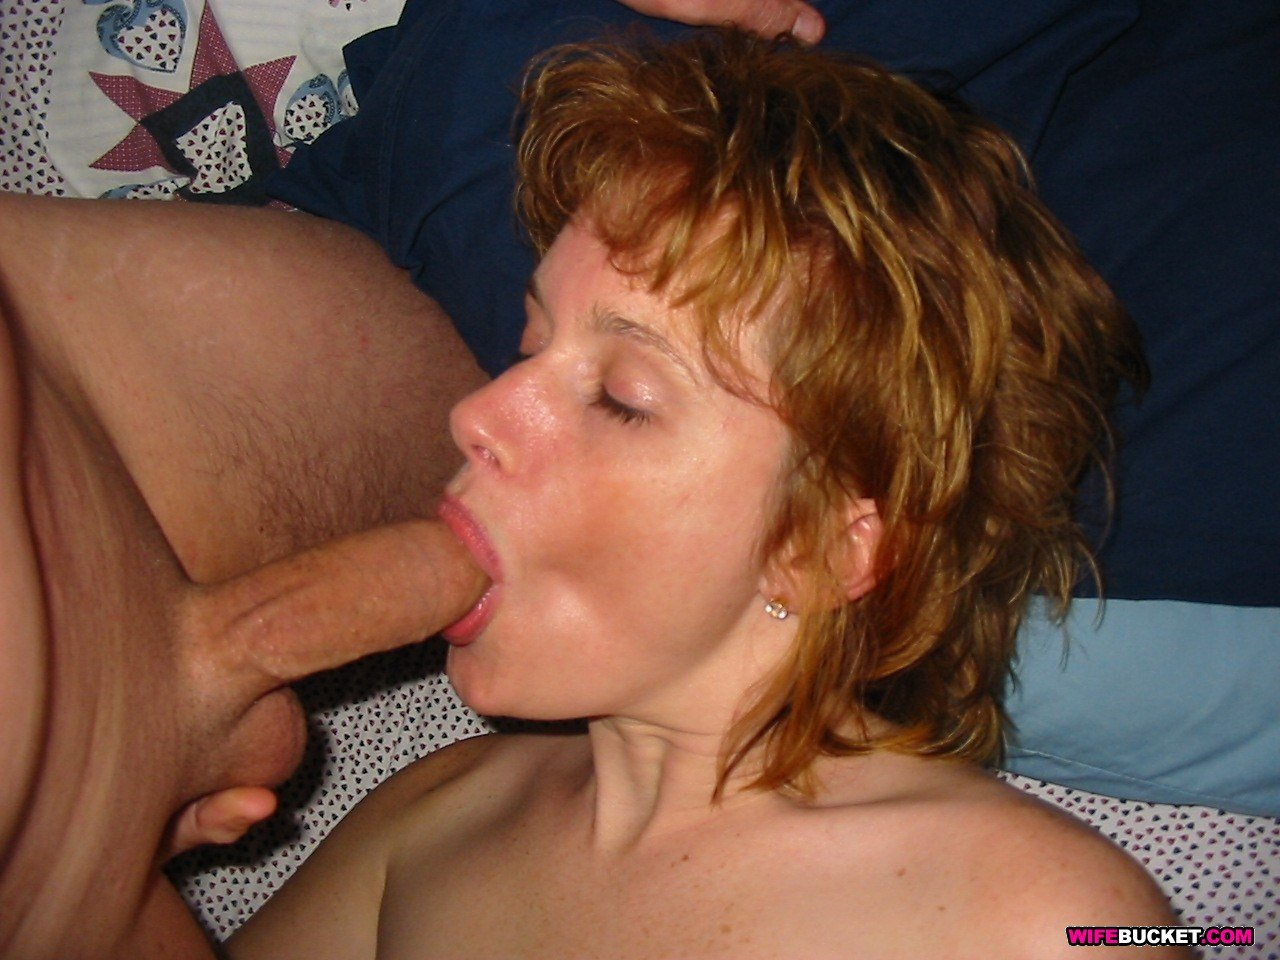 Wifebucket - Real Amateur Milfs And Wives Swingers Too-4178